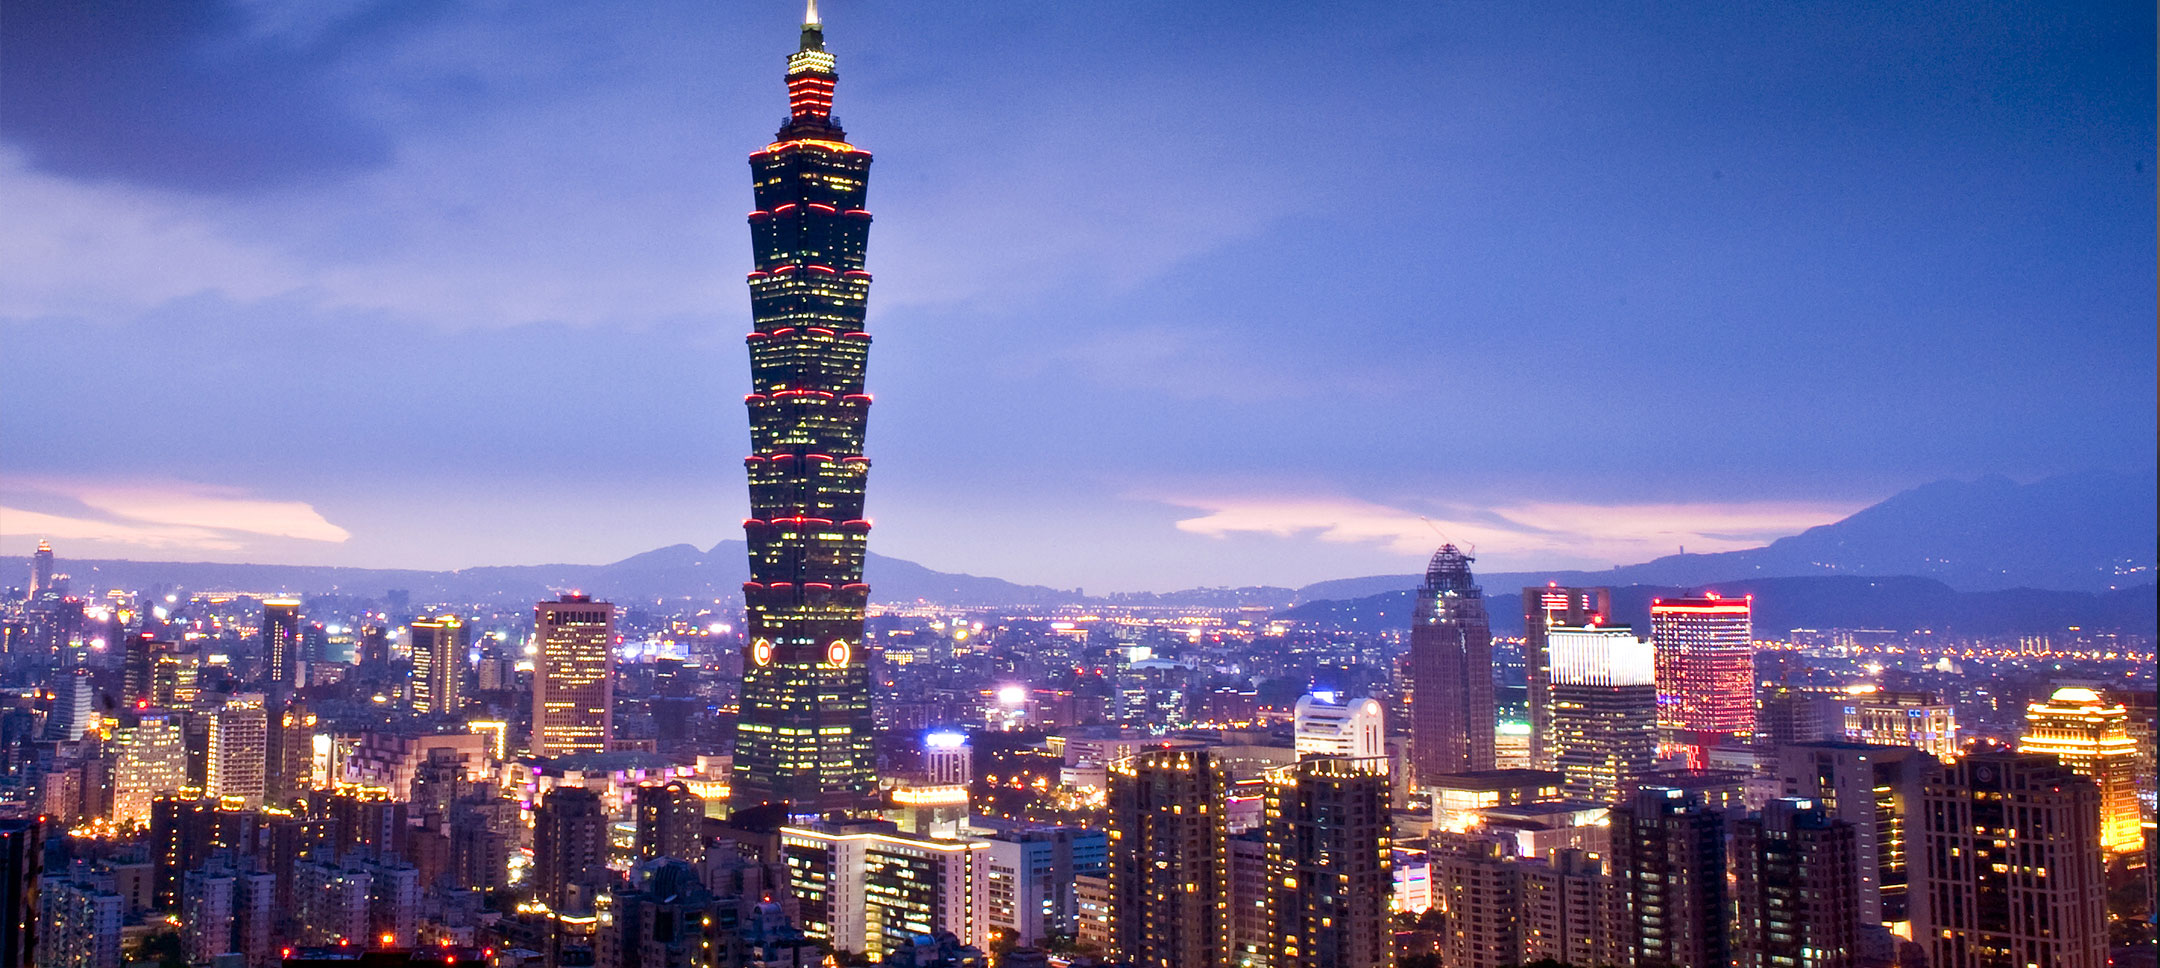 Images of Taipei | 2160x968